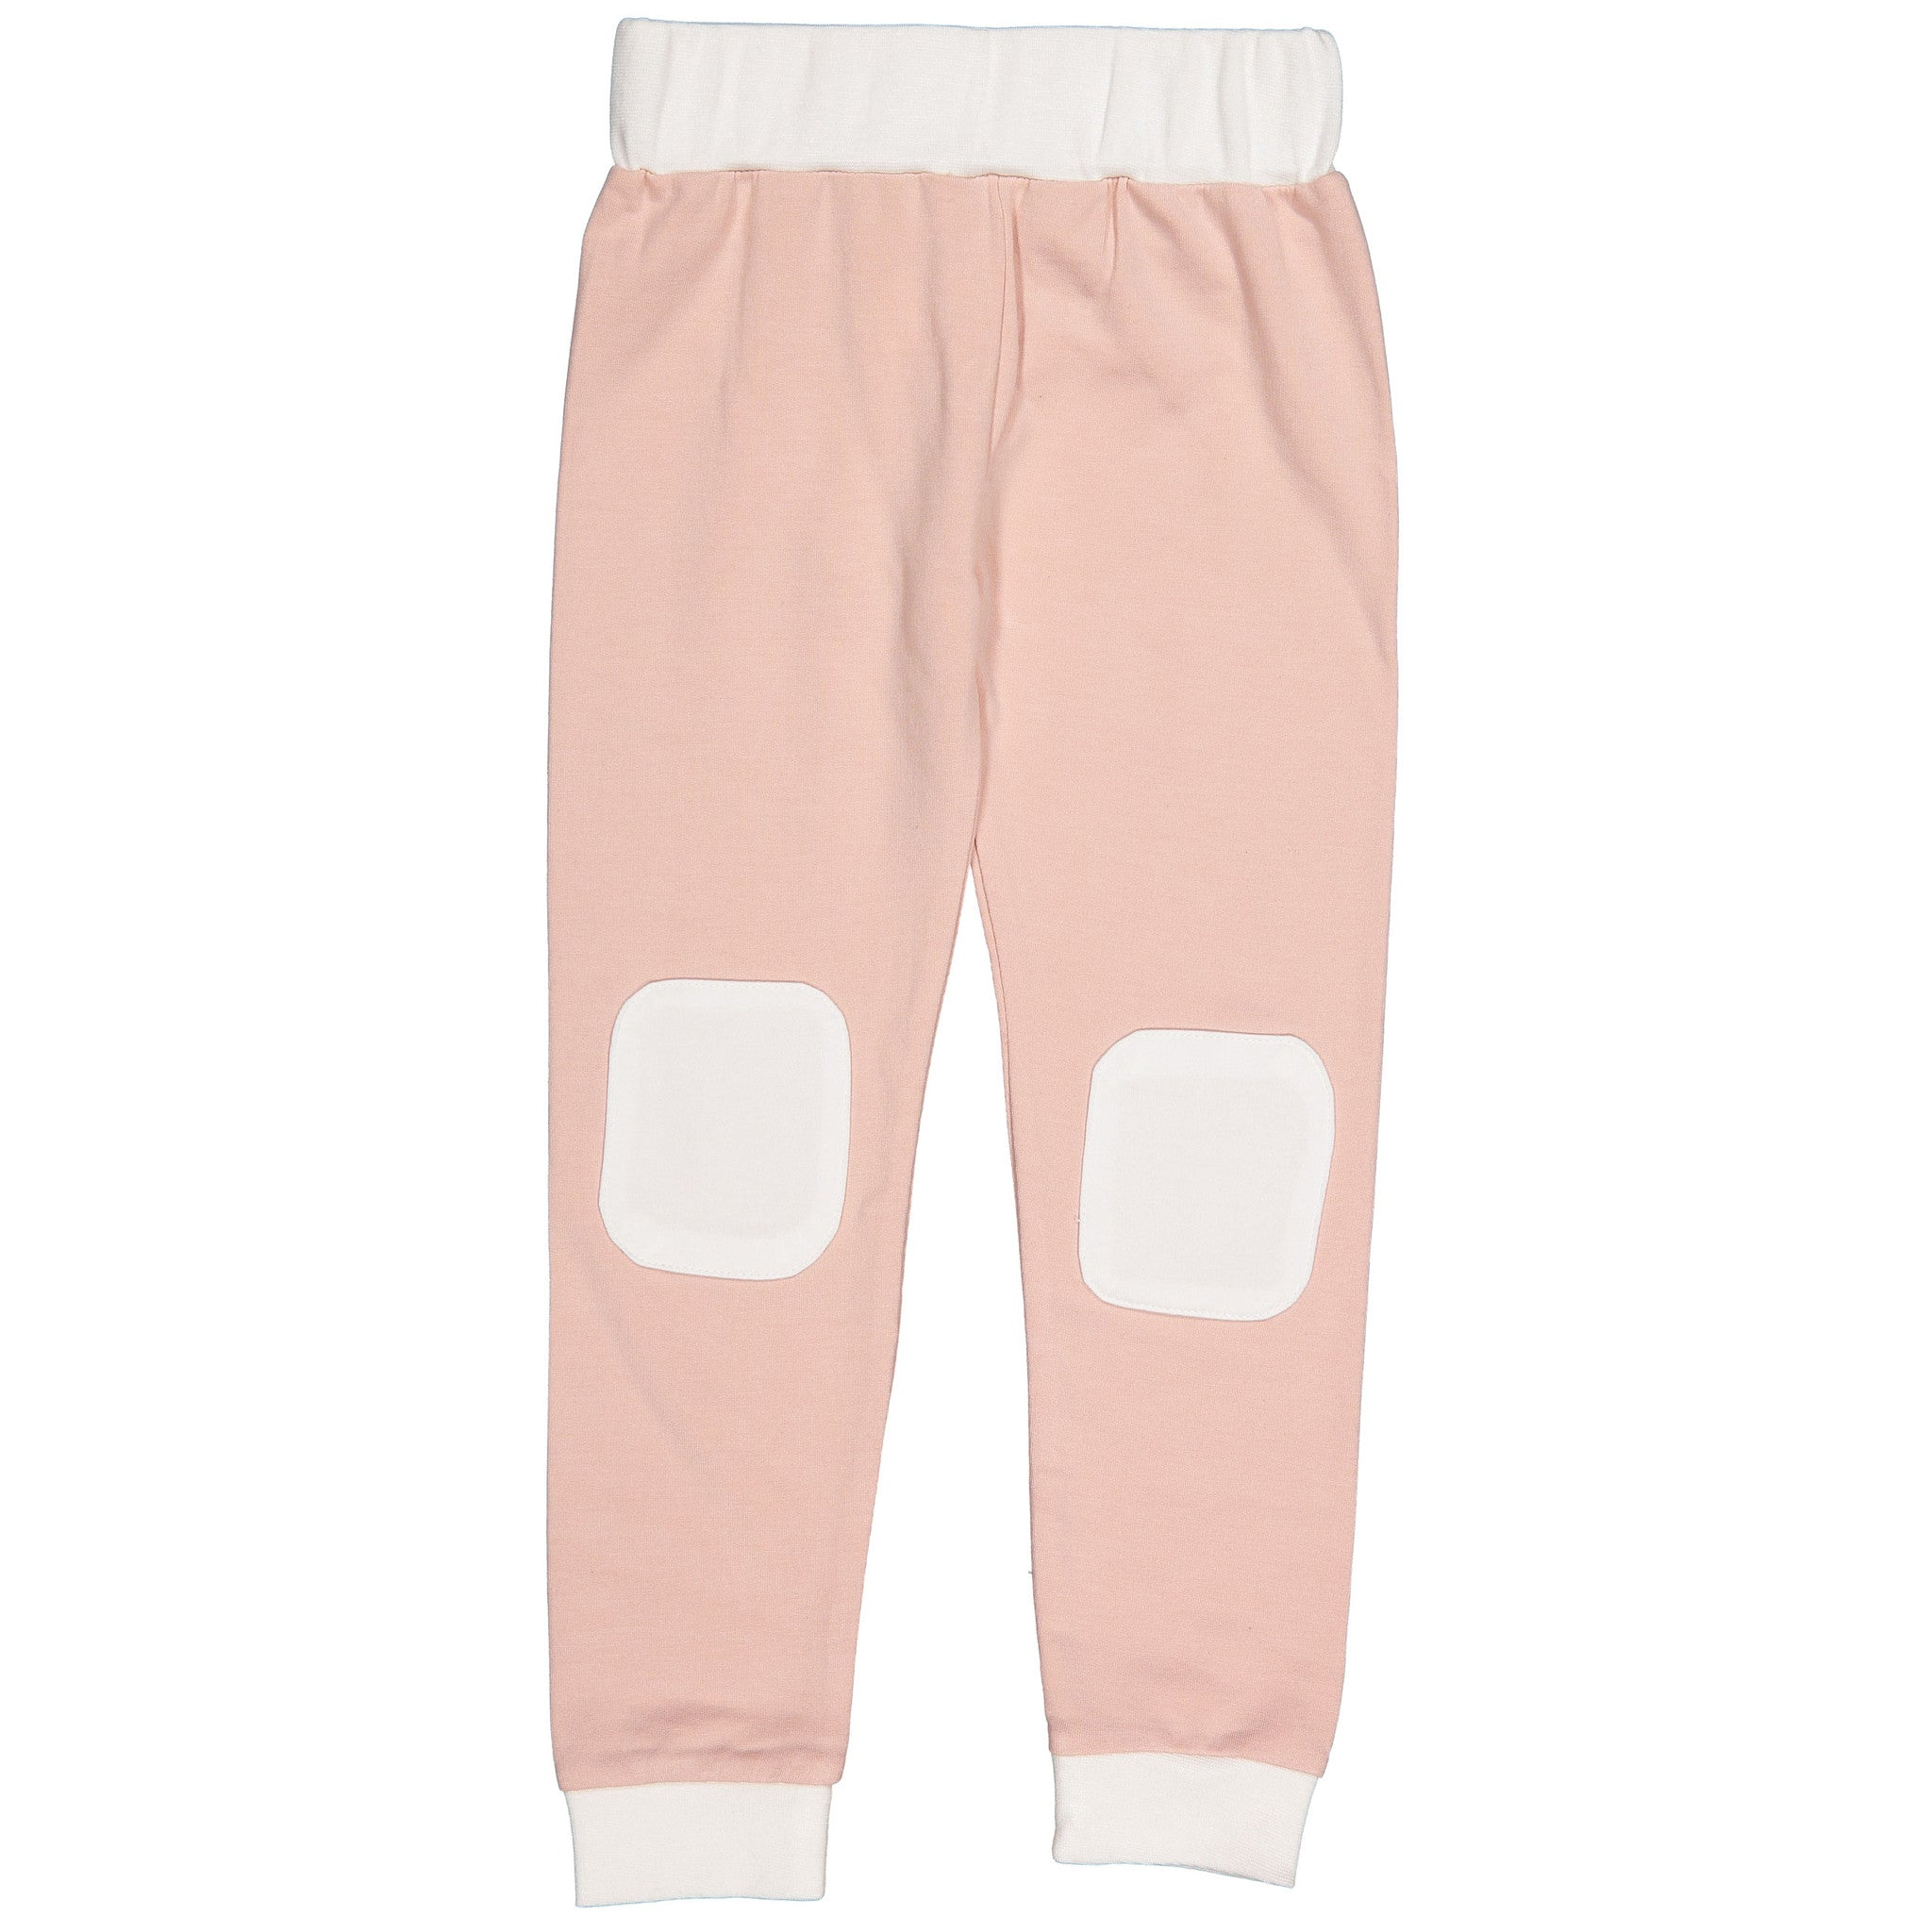 Coco Blanc Pale Pink/White PJs - Ladida